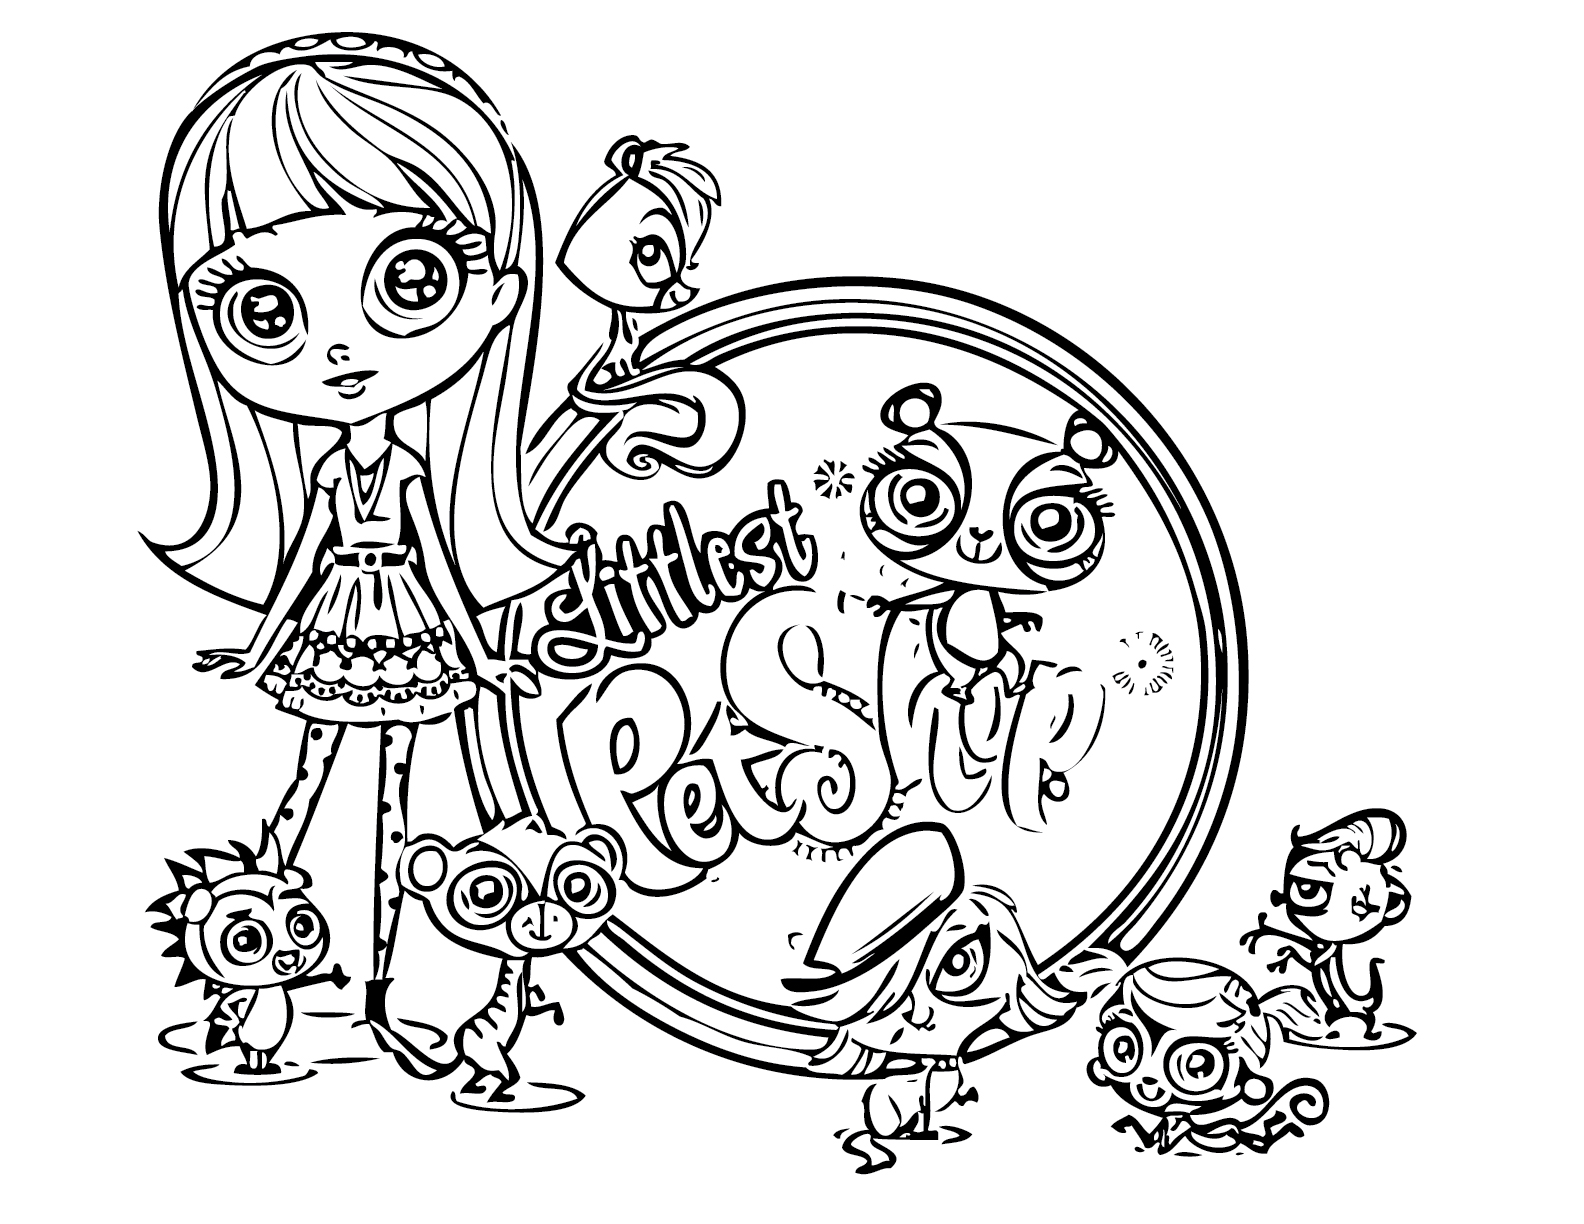 my little pet shop coloring pages littlest pet shop coloring pages printable coloring home pages shop pet coloring little my